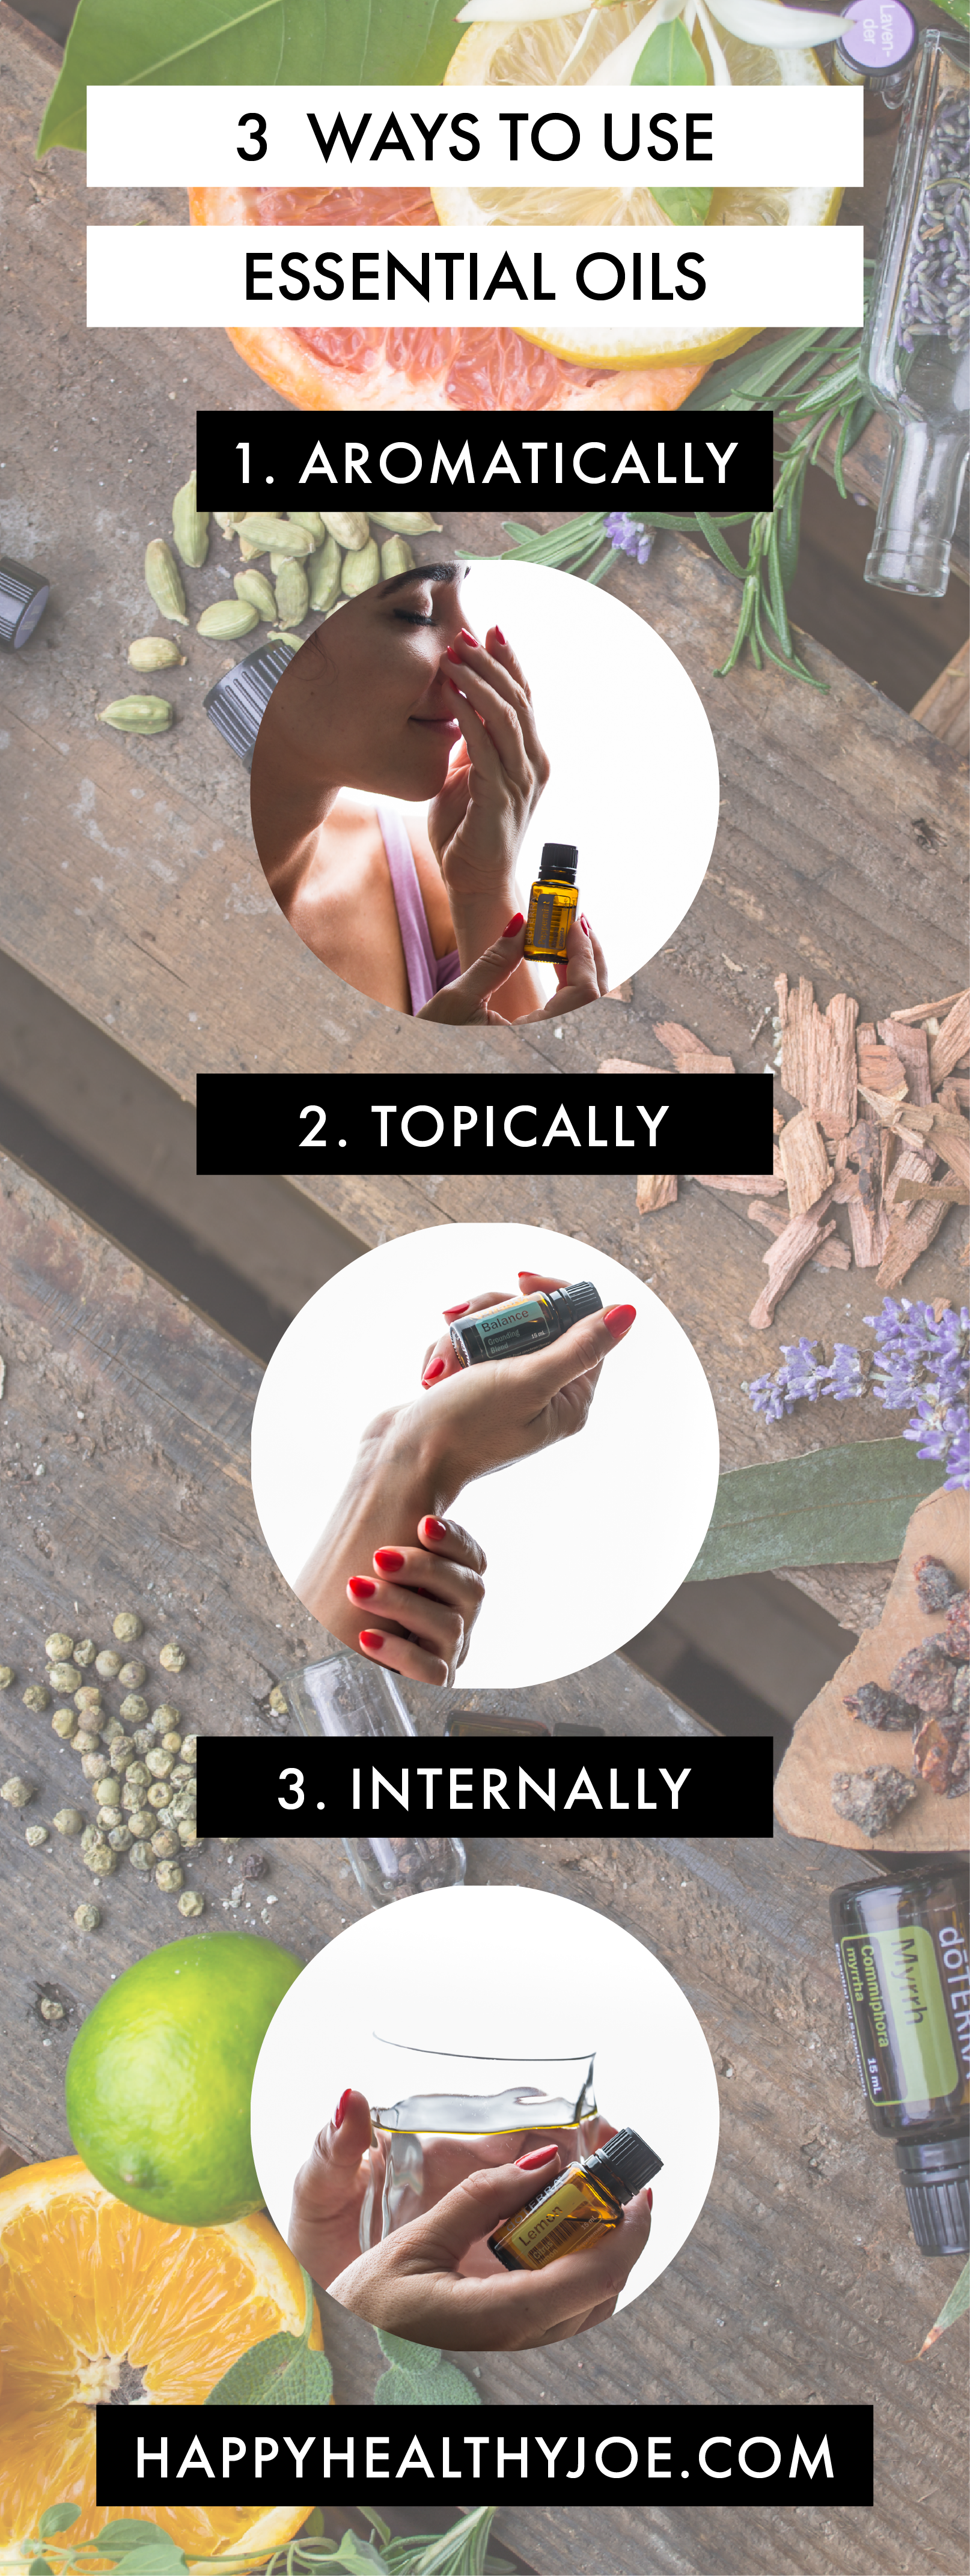 3 Ways to Use doTERRA Essential Oils Infographic